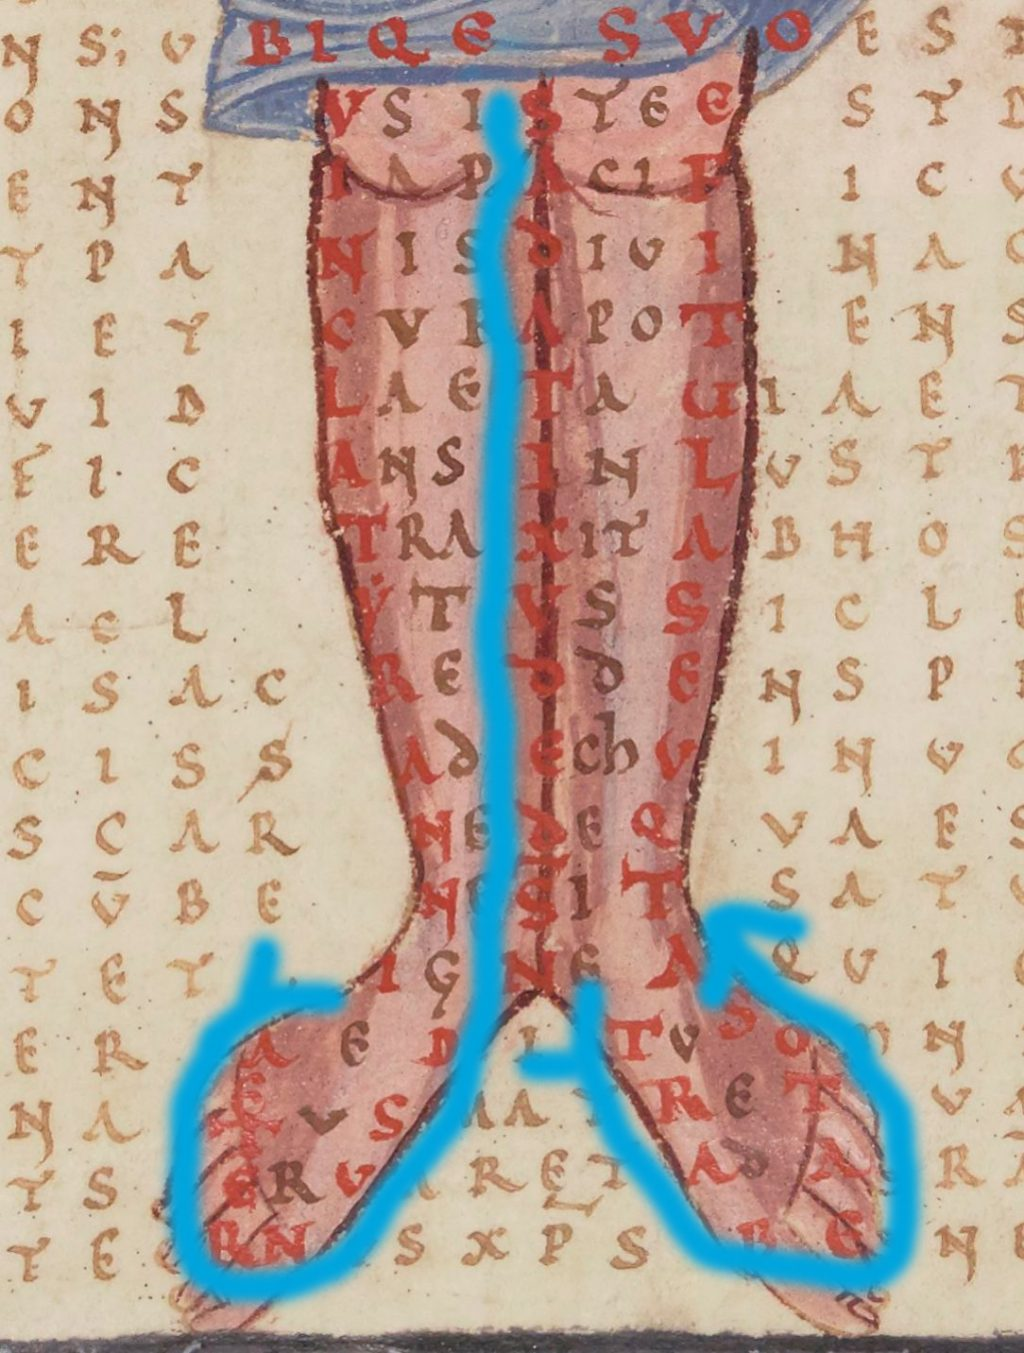 tracing Christ's genitals pointing to heaven